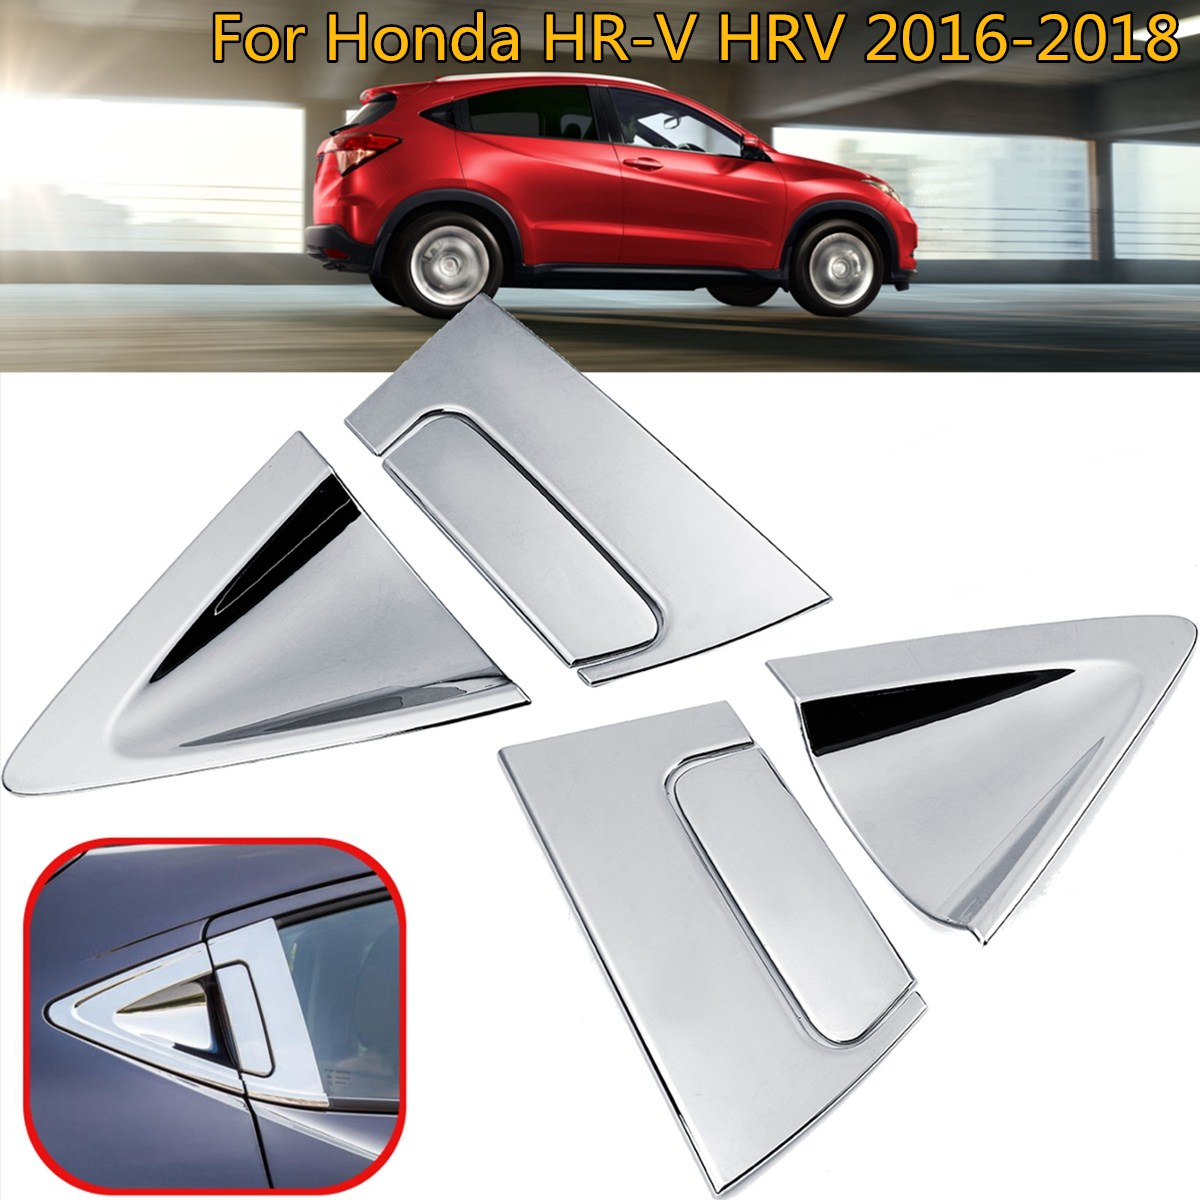 For Honda Vezel HR-V HRV 2016-2018 Car Accessories 6pcs ABS Chrome/Carbon fiber Side Rear Door Handle Bowl Cover Insert Trim